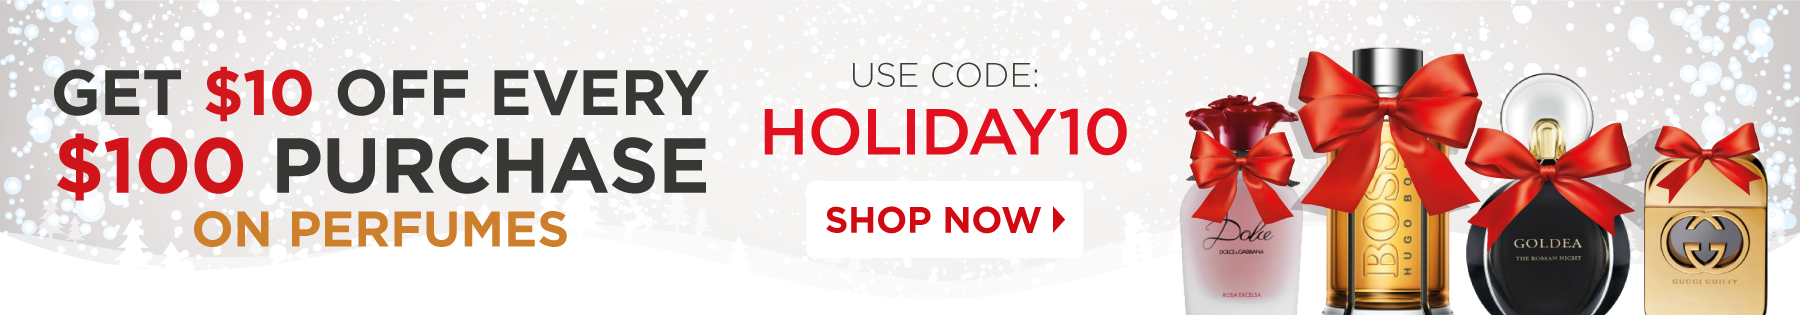 Holiday Shopping Begins...Save up to 90% off on Perfumes!